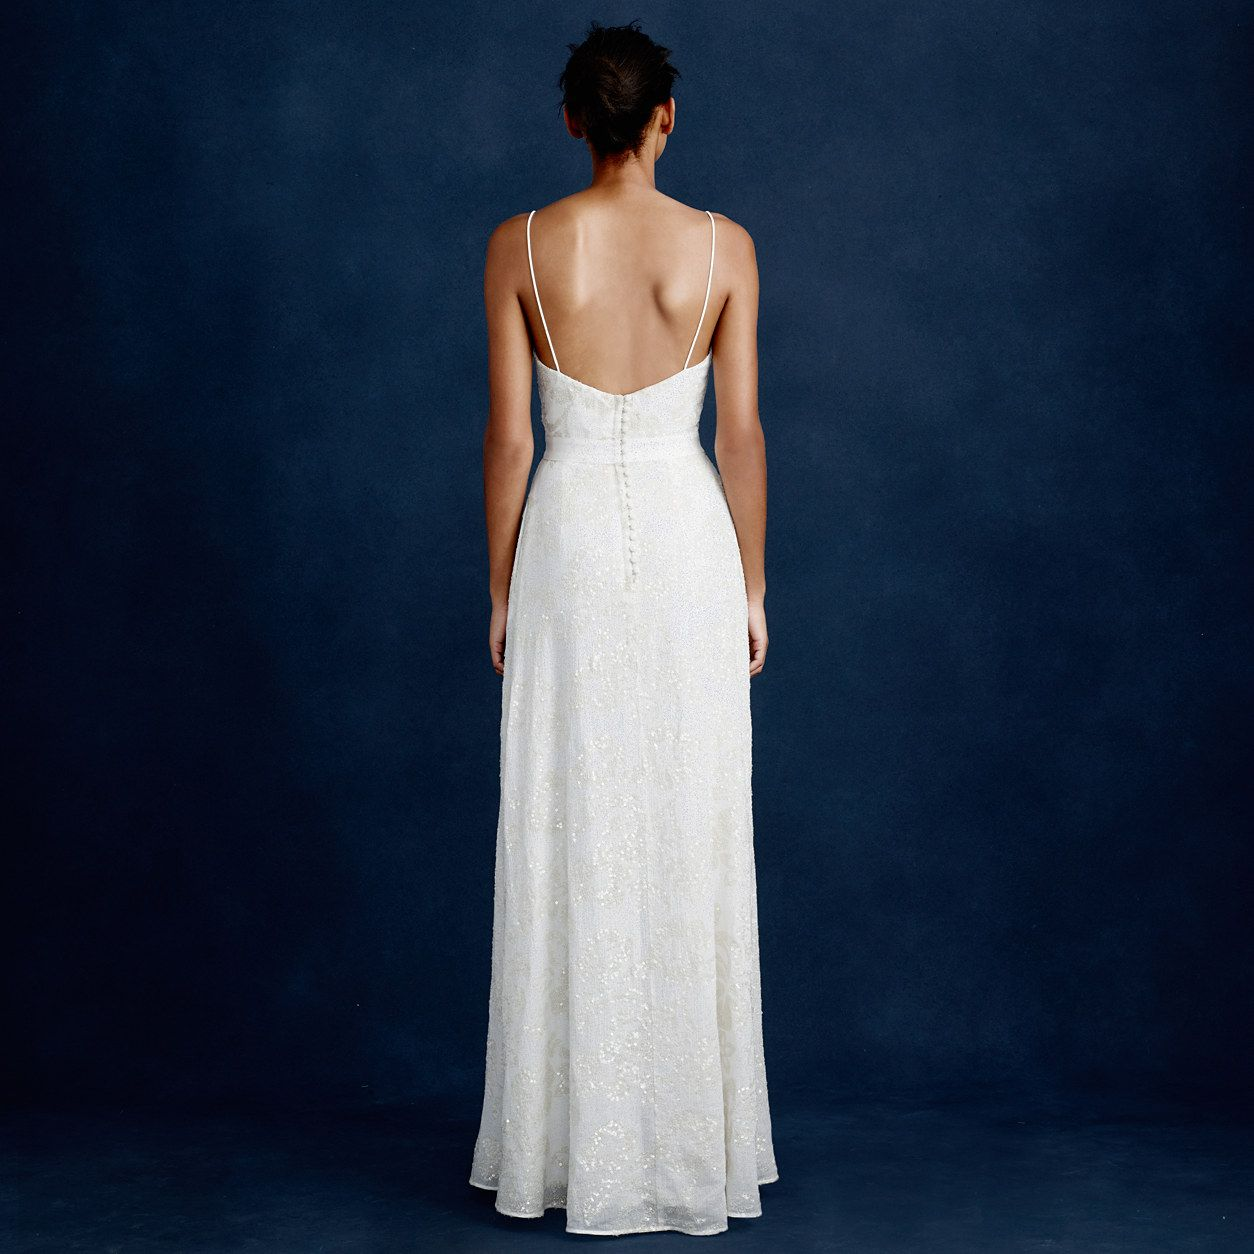 Sequin Plume Gown Gowns Of Elegance Gowns Wedding Gowns